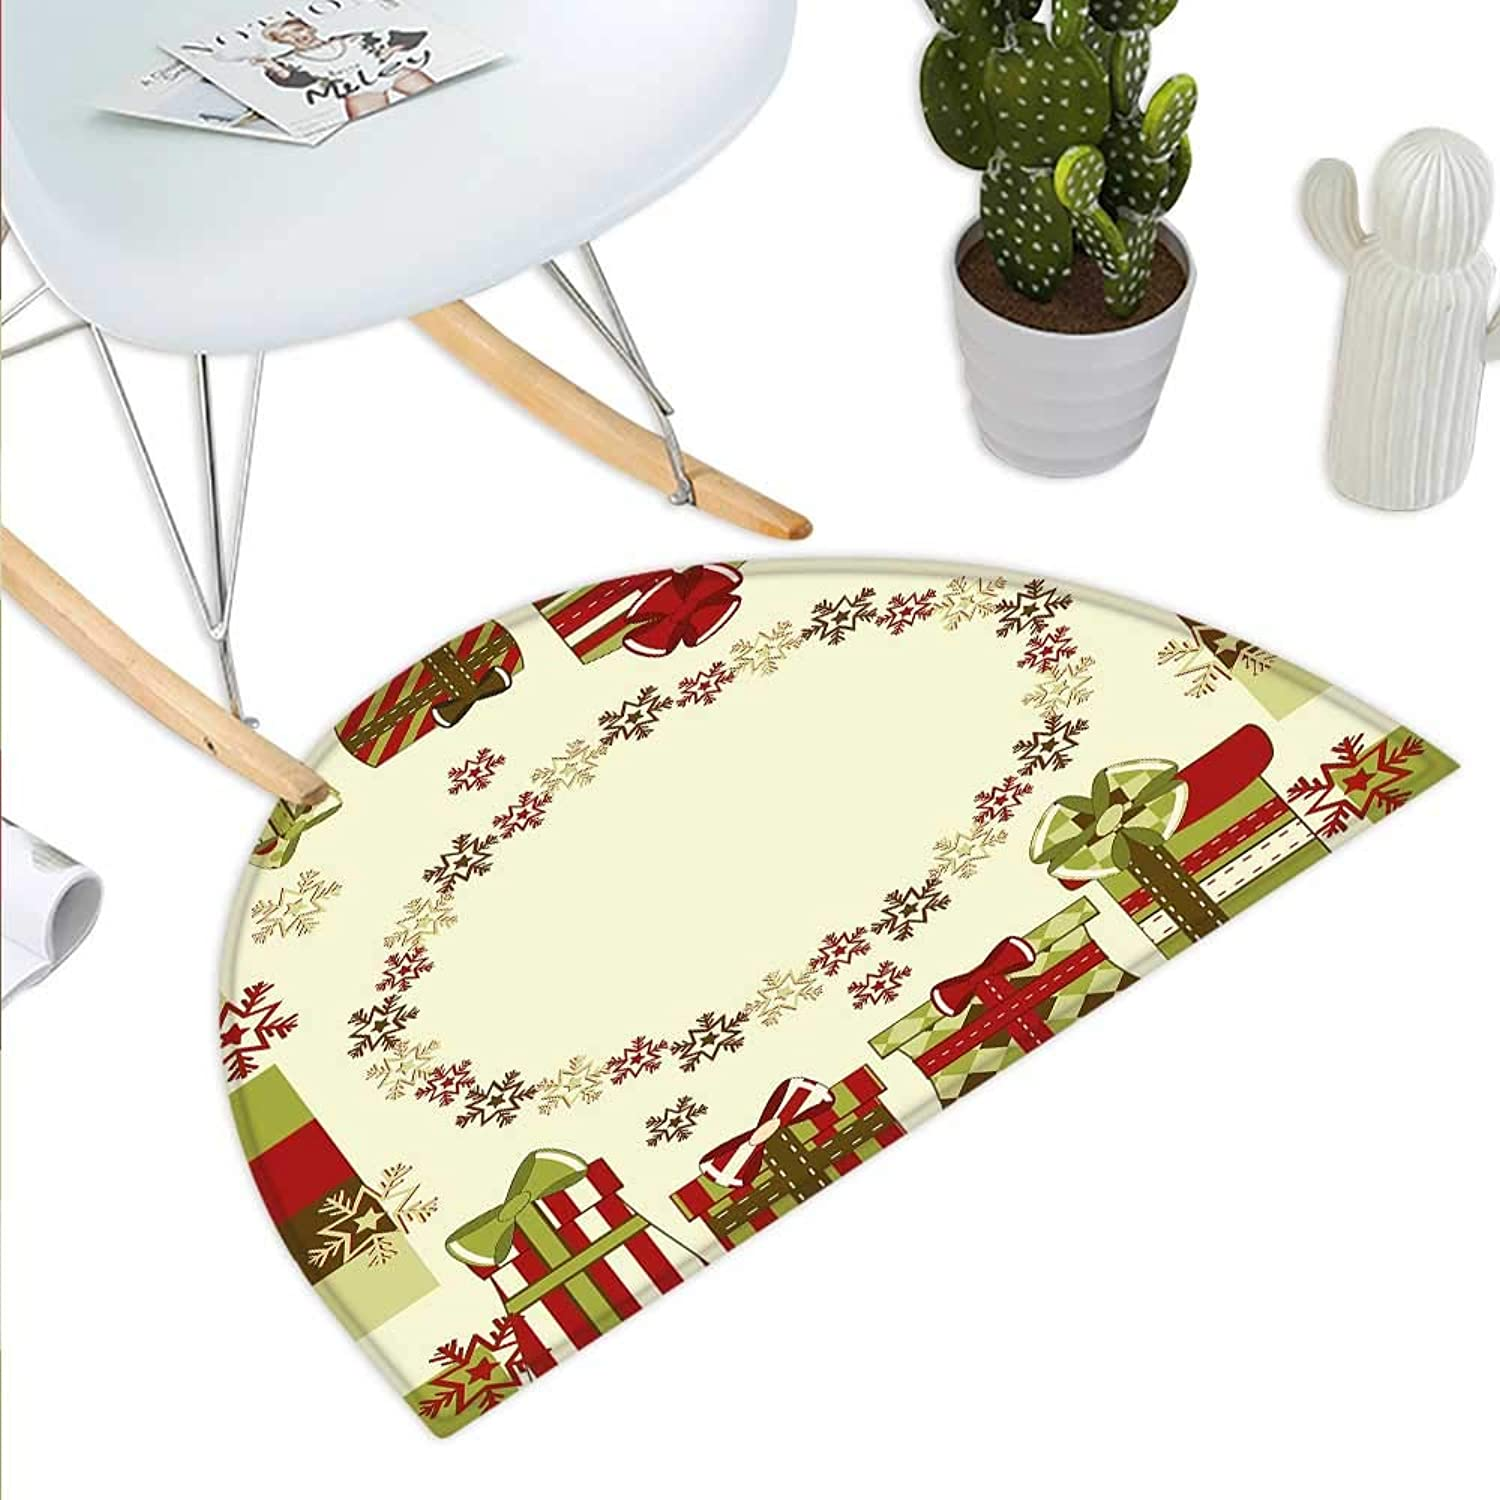 New Year Semicircle Doormat Star Shaped Snowflakes with Ornamental Boxes Abstract Christmas Halfmoon doormats H 35.4  xD 53.1  Pale Green Red Green Brown